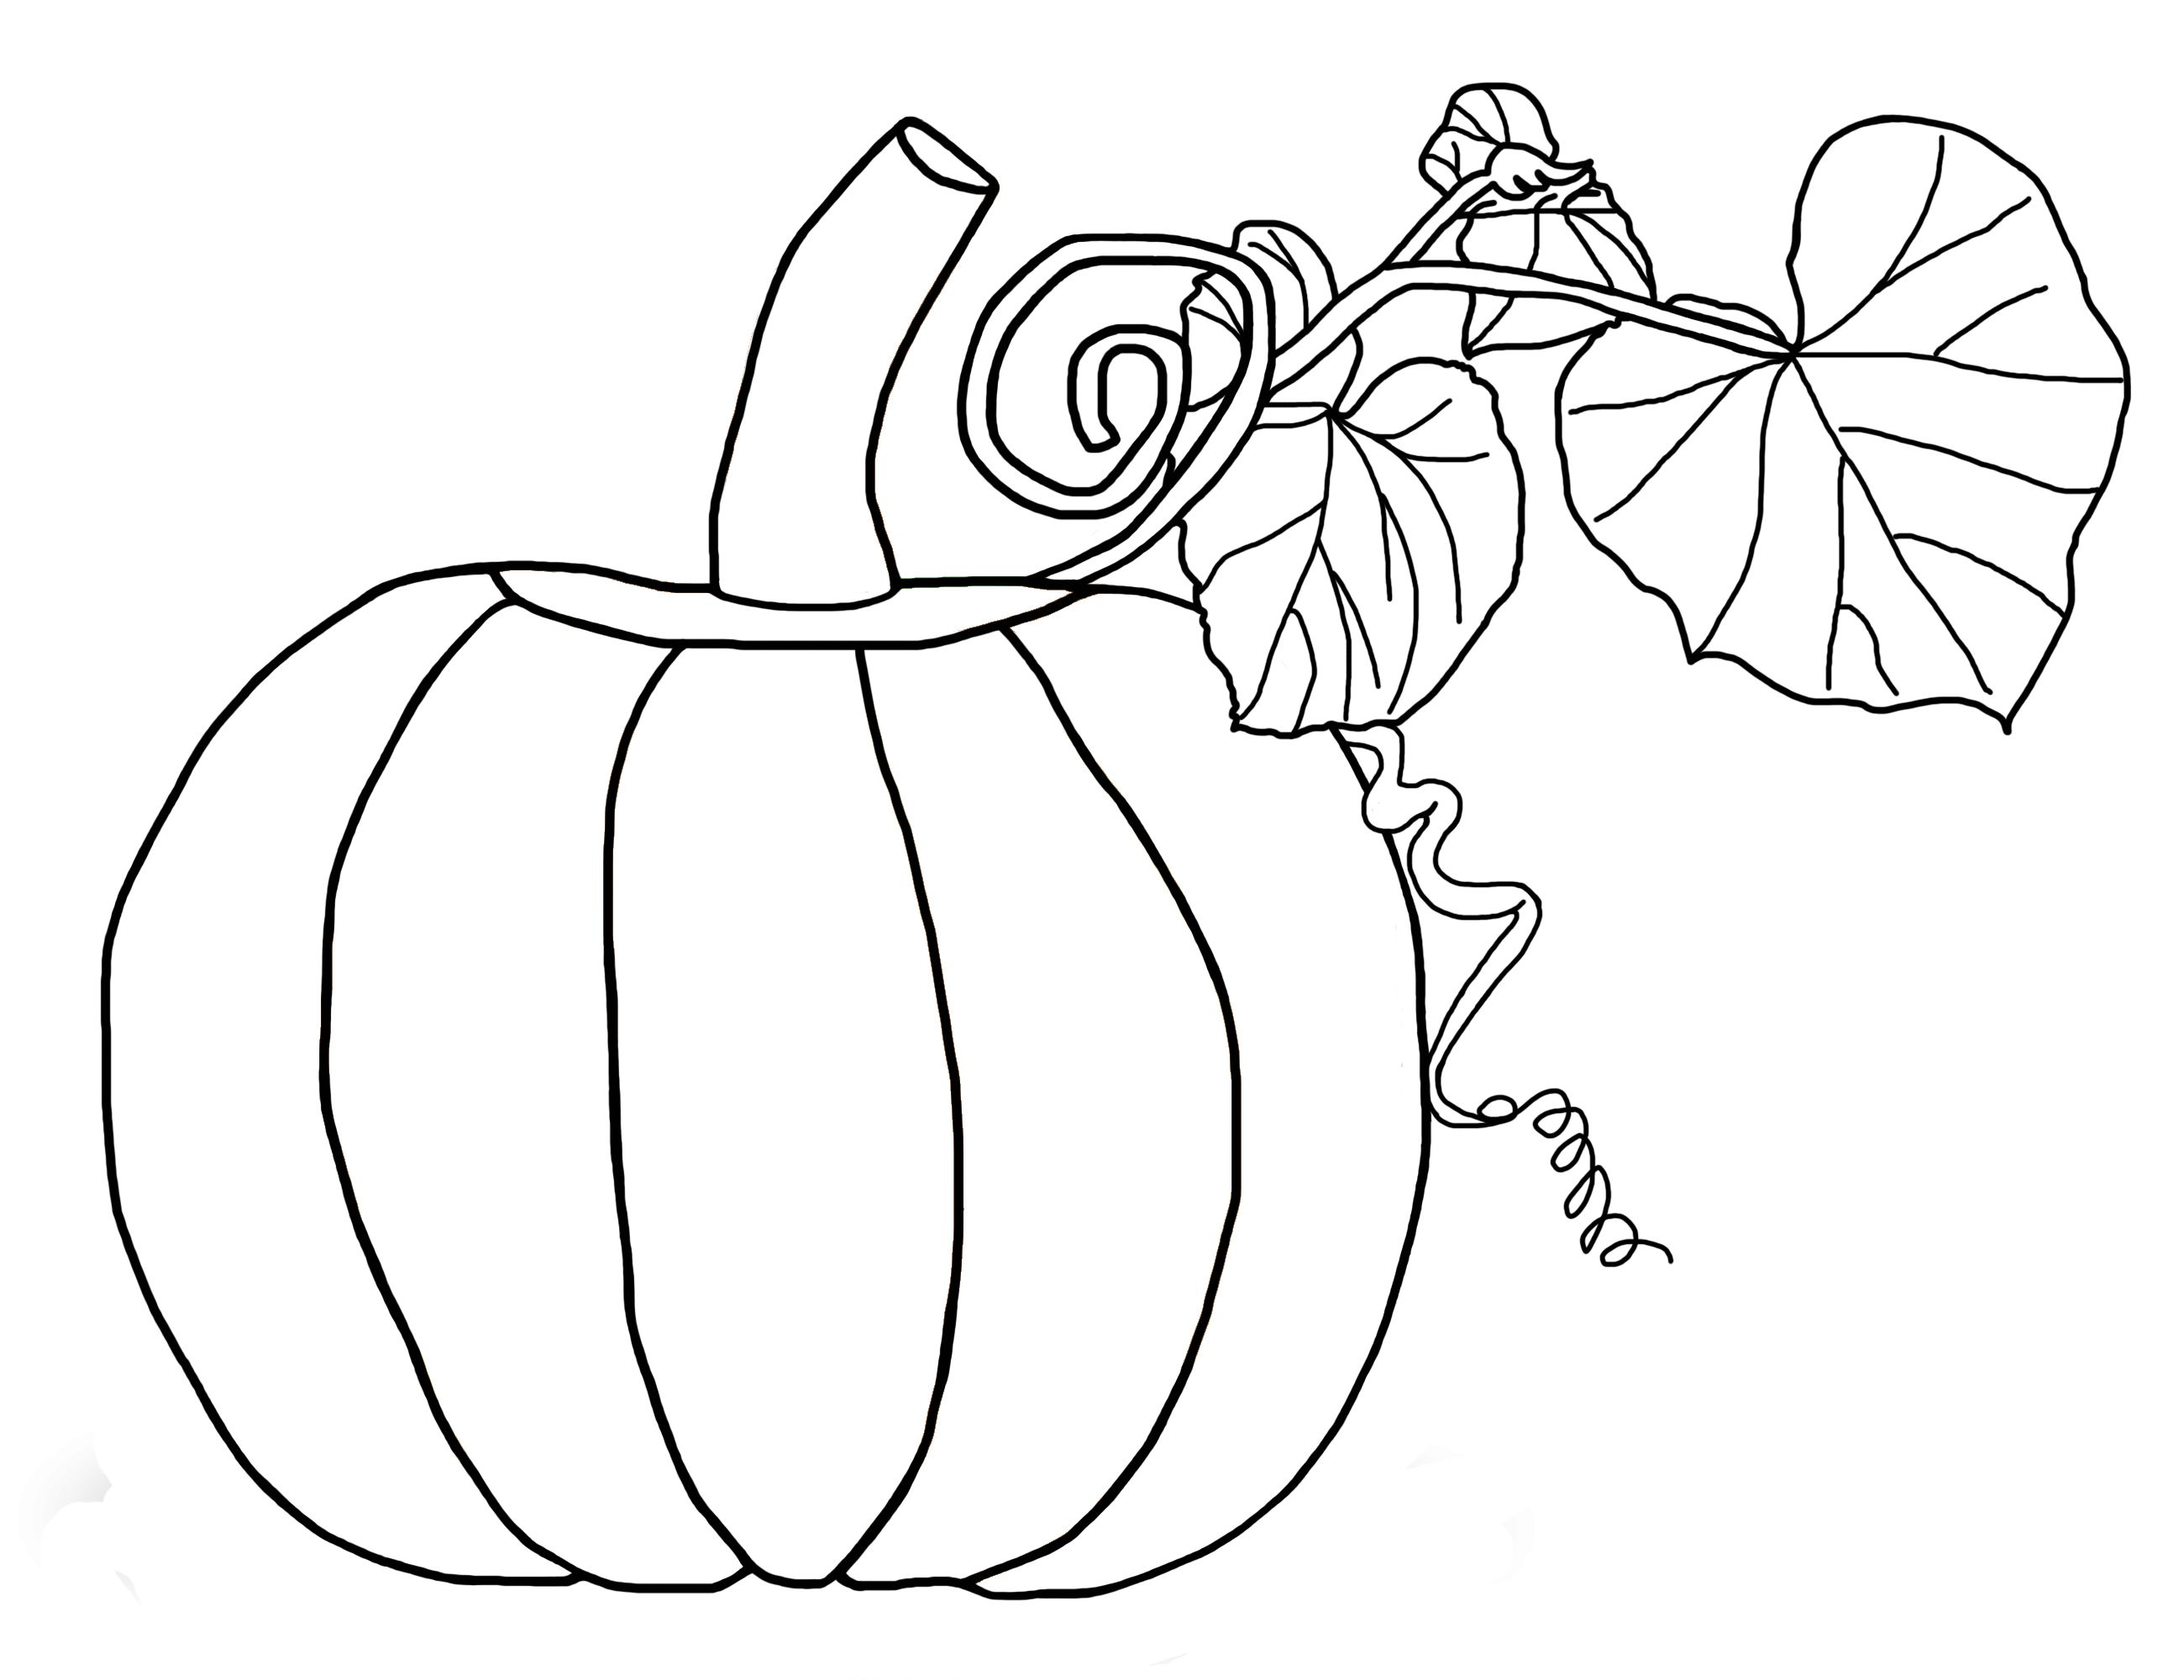 Pumpkin Coloring Pages Pumpkin Coloring Pages Cute Coloring